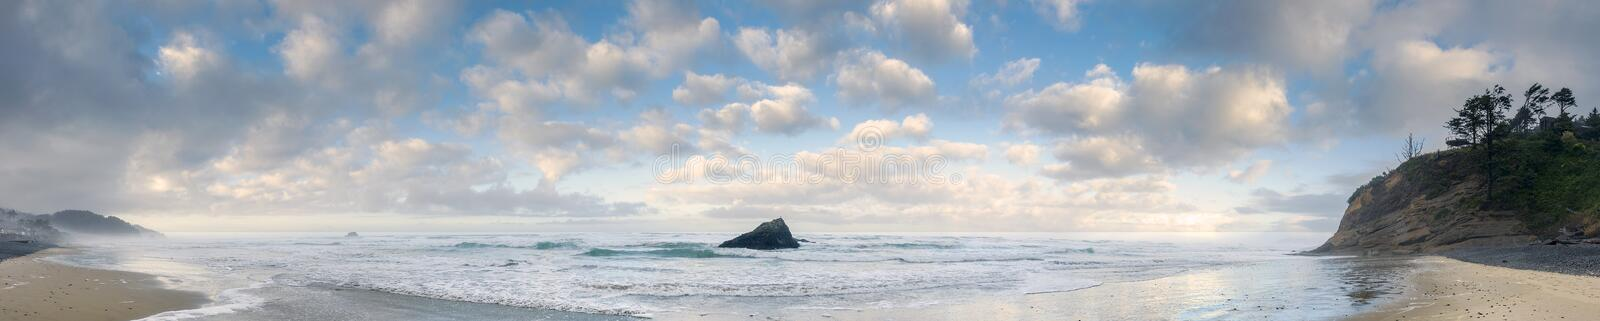 Panoramic View of Arch Cape, Oregon. royalty free stock image